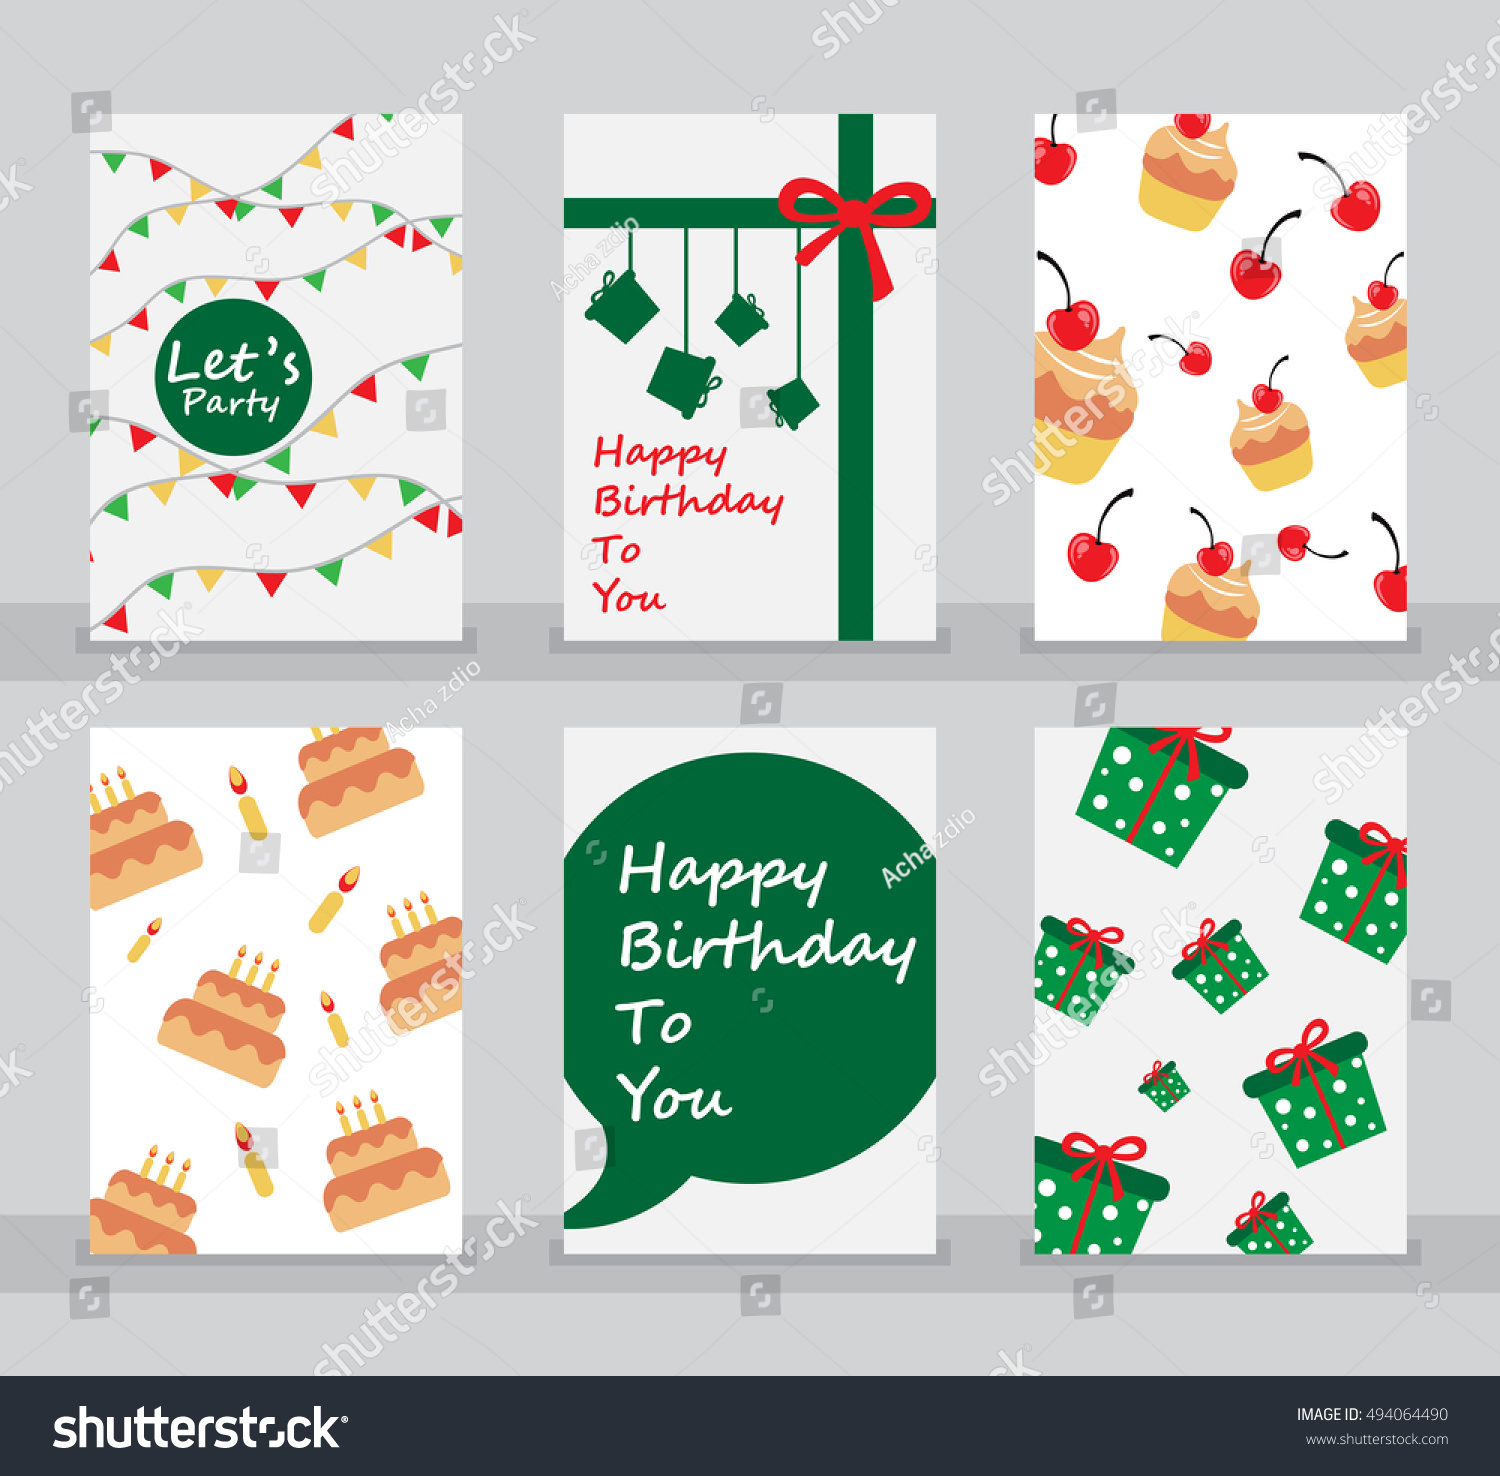 happy birthday merry christmas clip art ; stock-vector-happy-birthday-merry-christmas-greeting-and-invitation-card-there-are-teddy-bear-gift-boxes-494064490